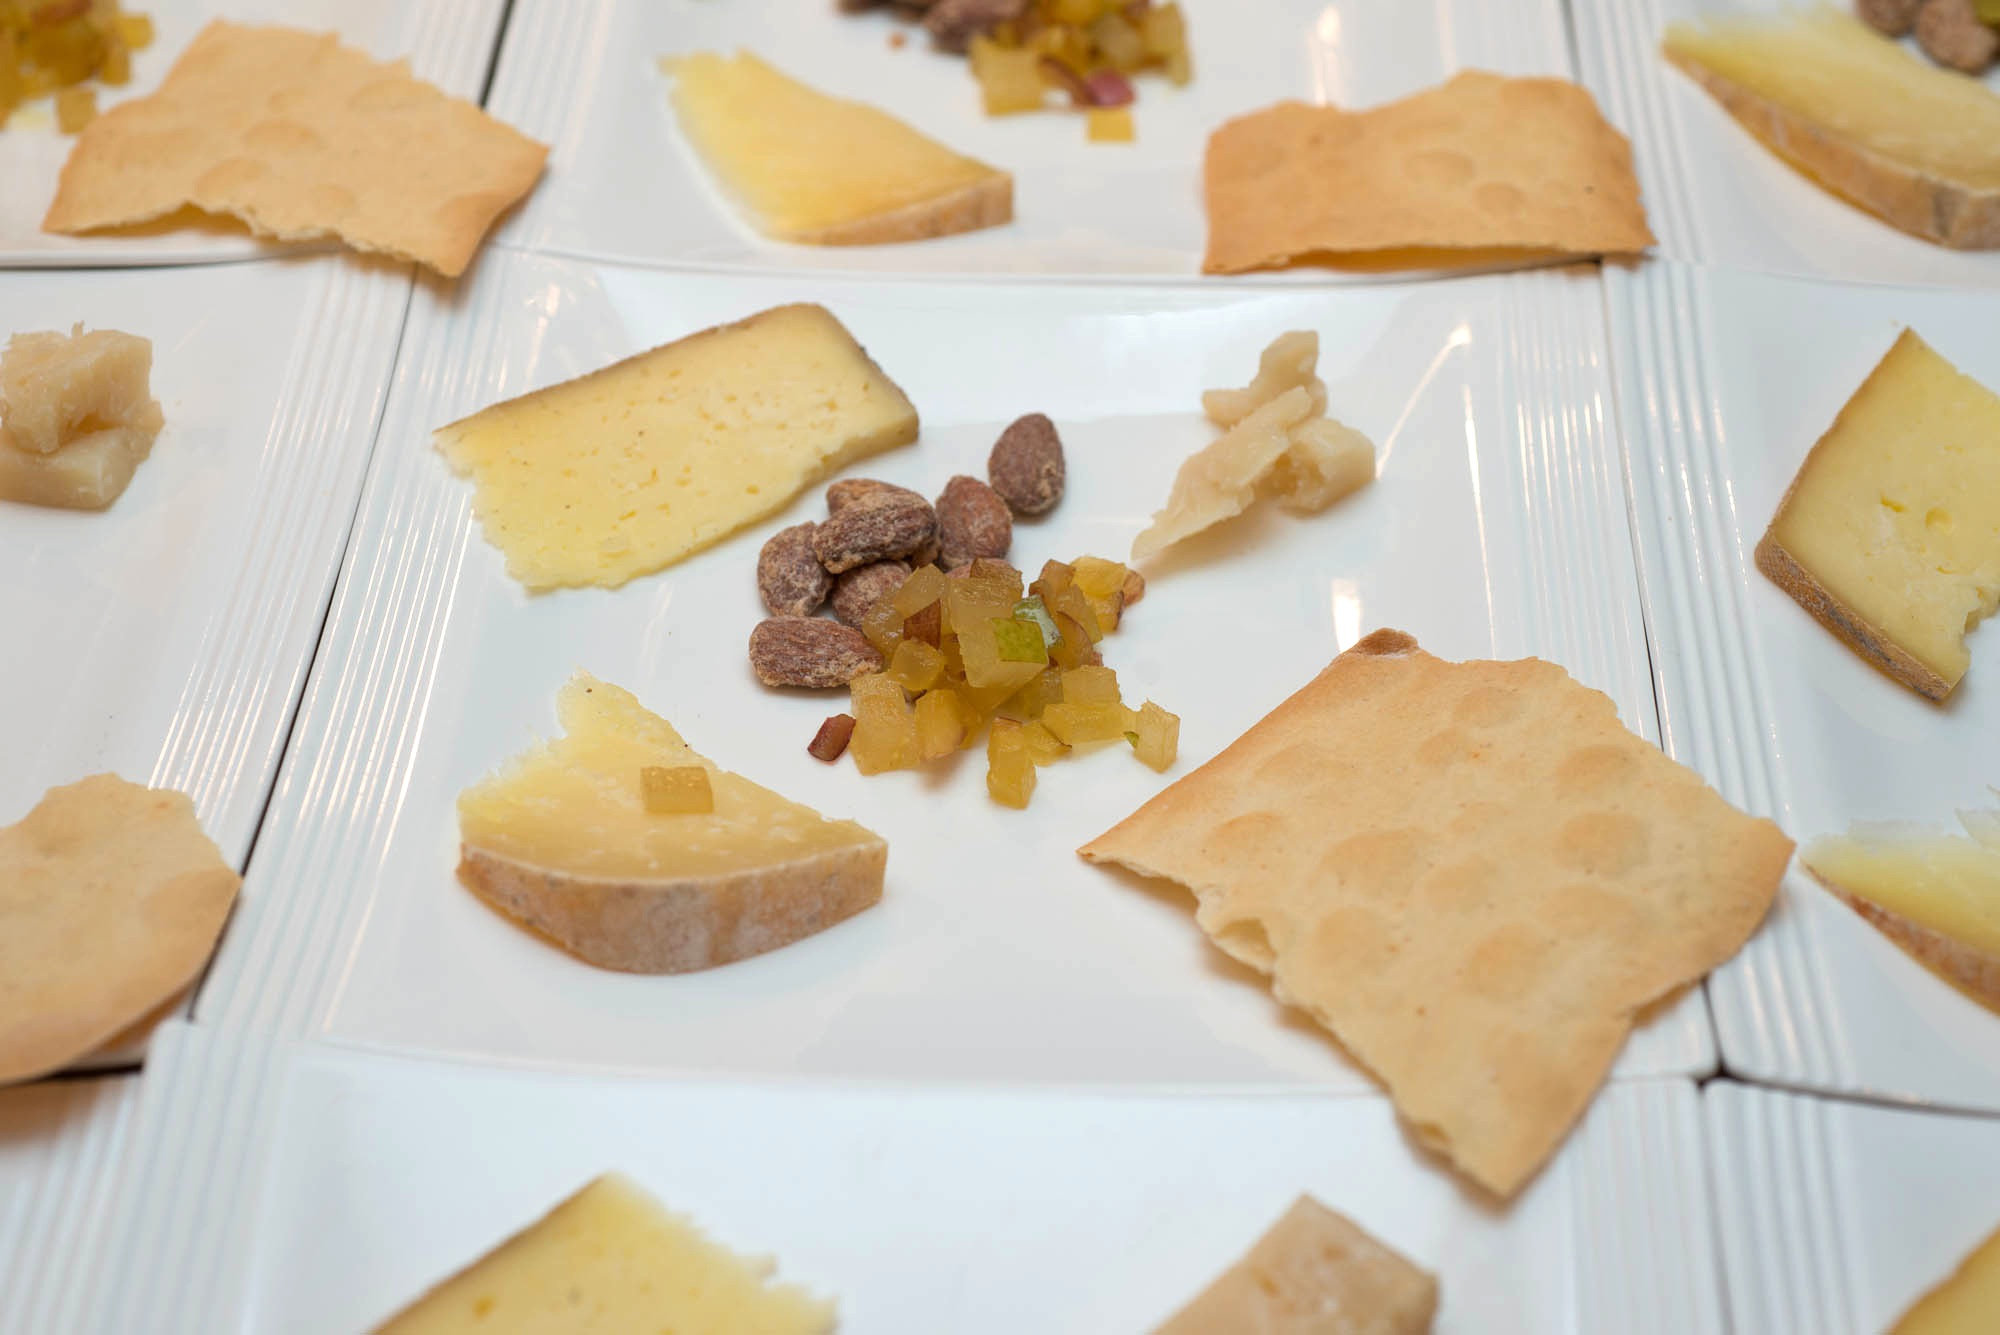 California Sheep, Goat, and Cow's Milk Cheeses with Accompaniments